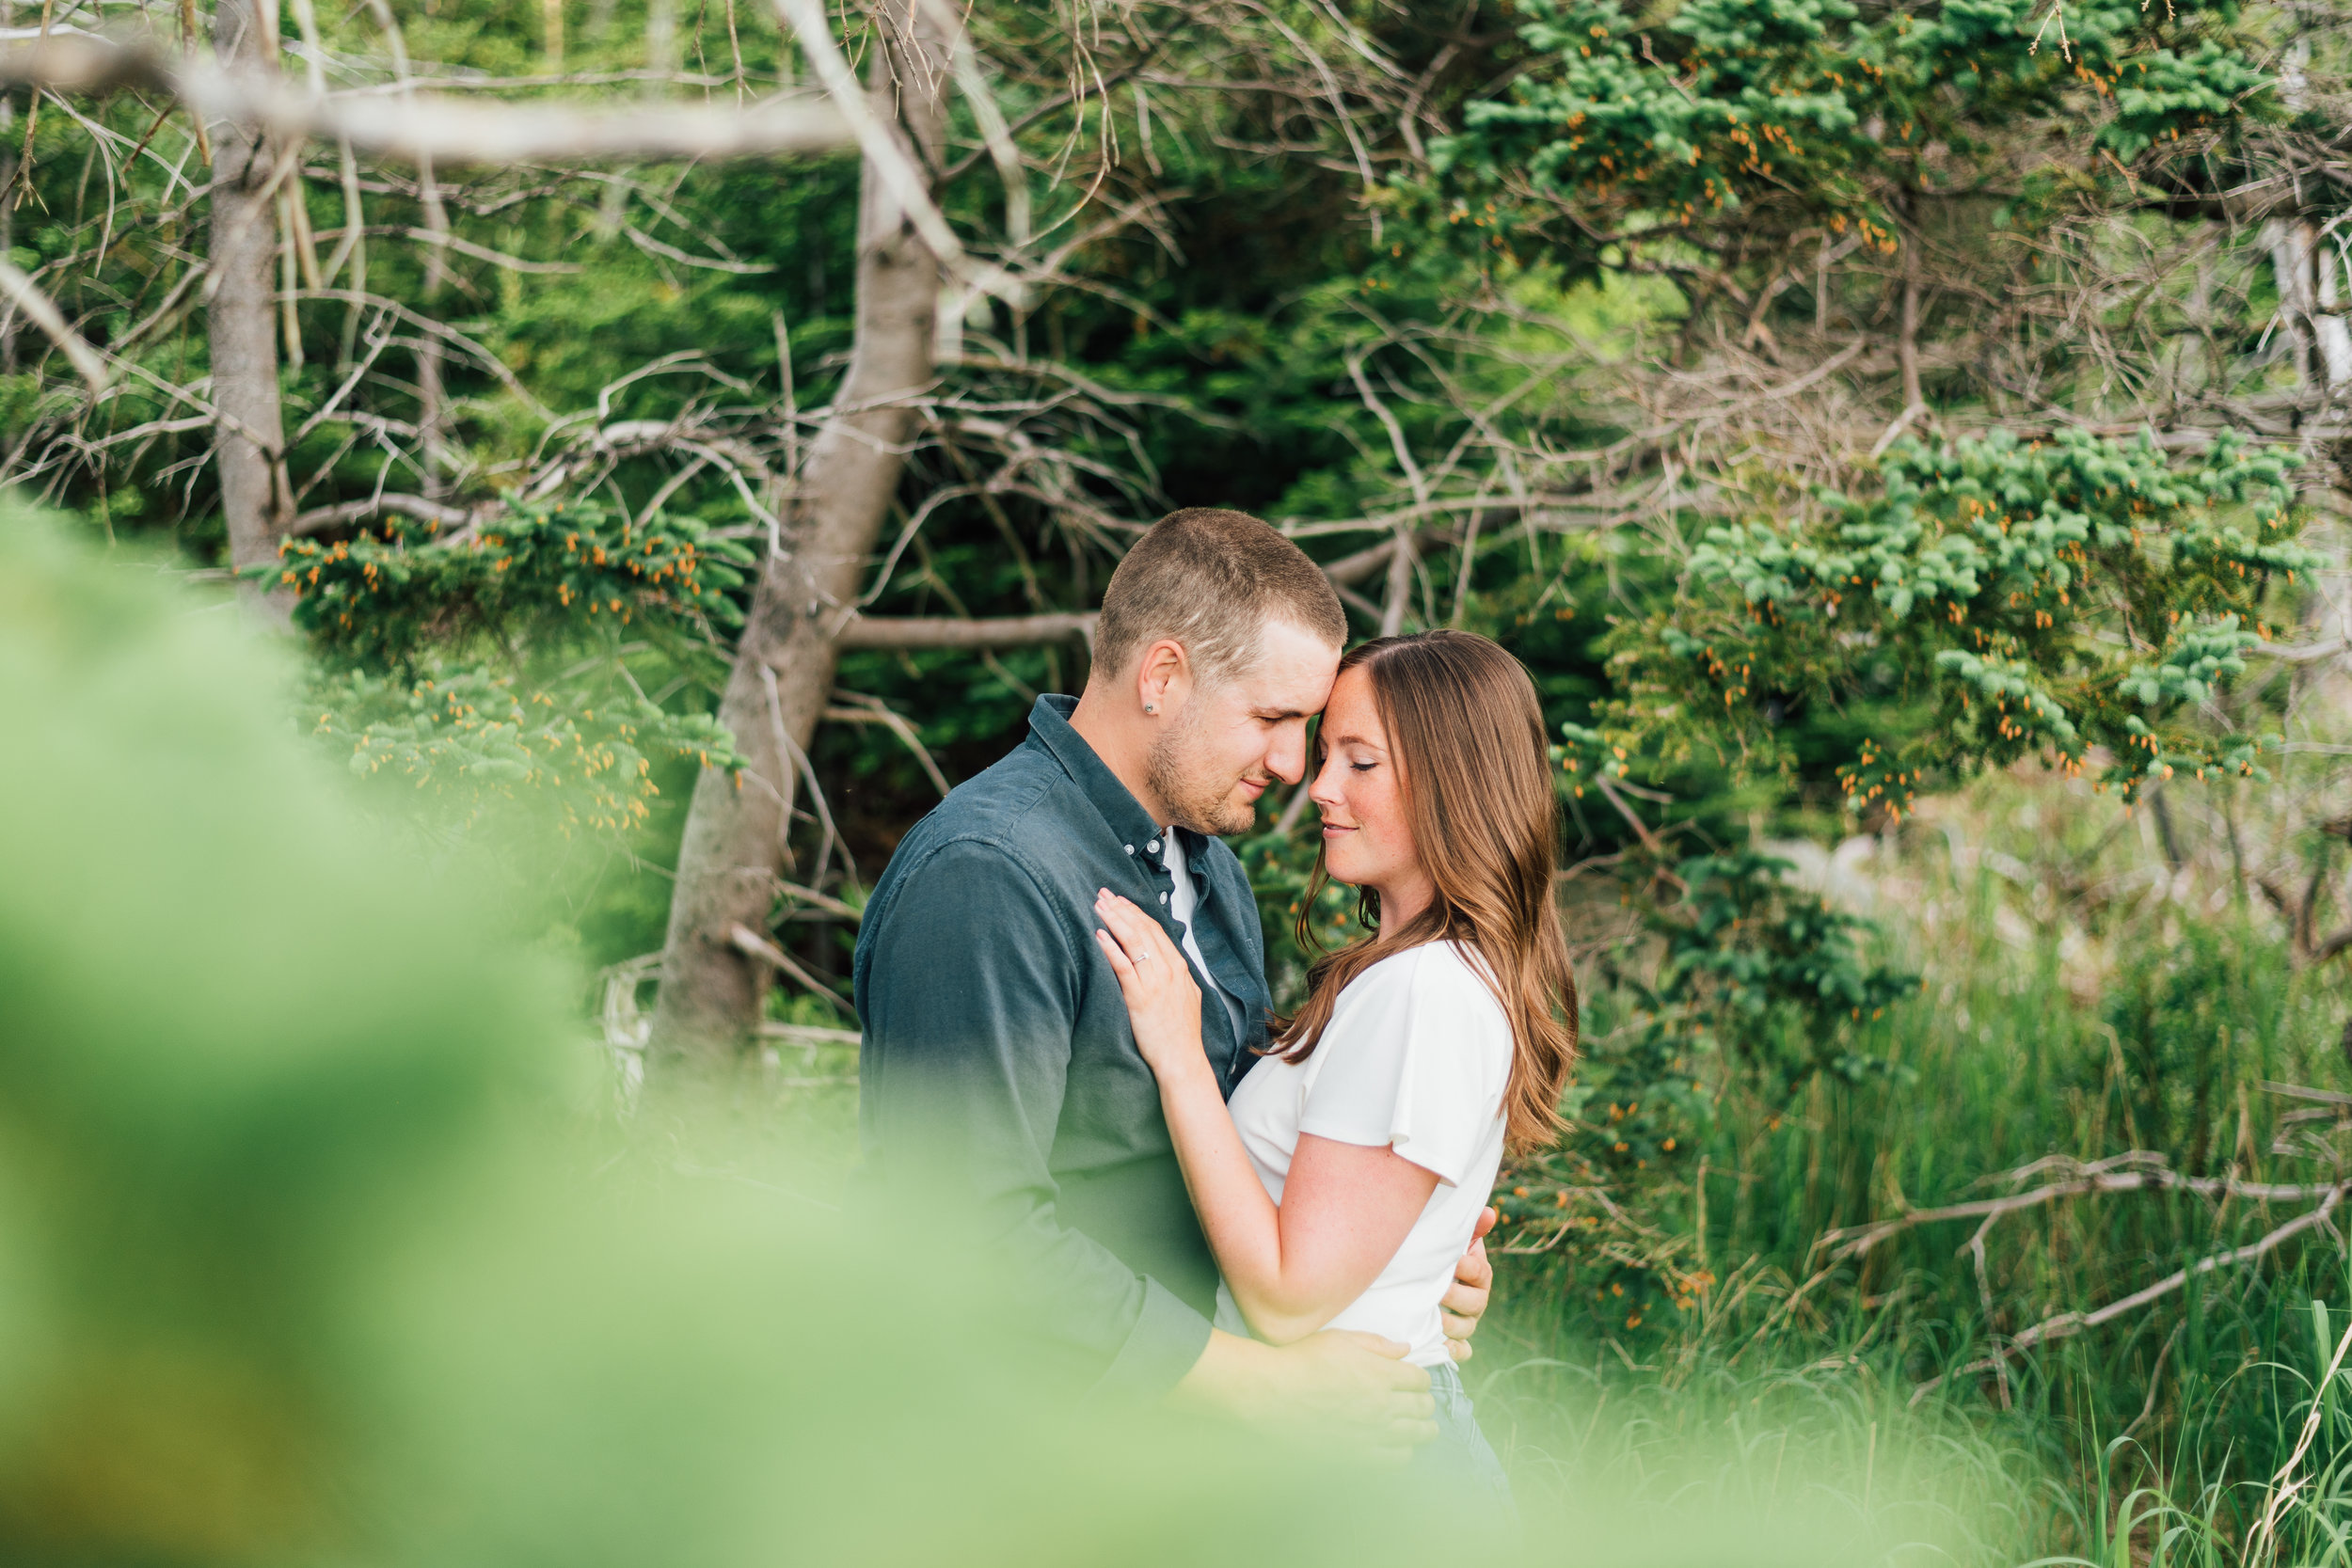 Engagement by the Ocean - Mackie & Jessie | Halifax Wedding Photographer